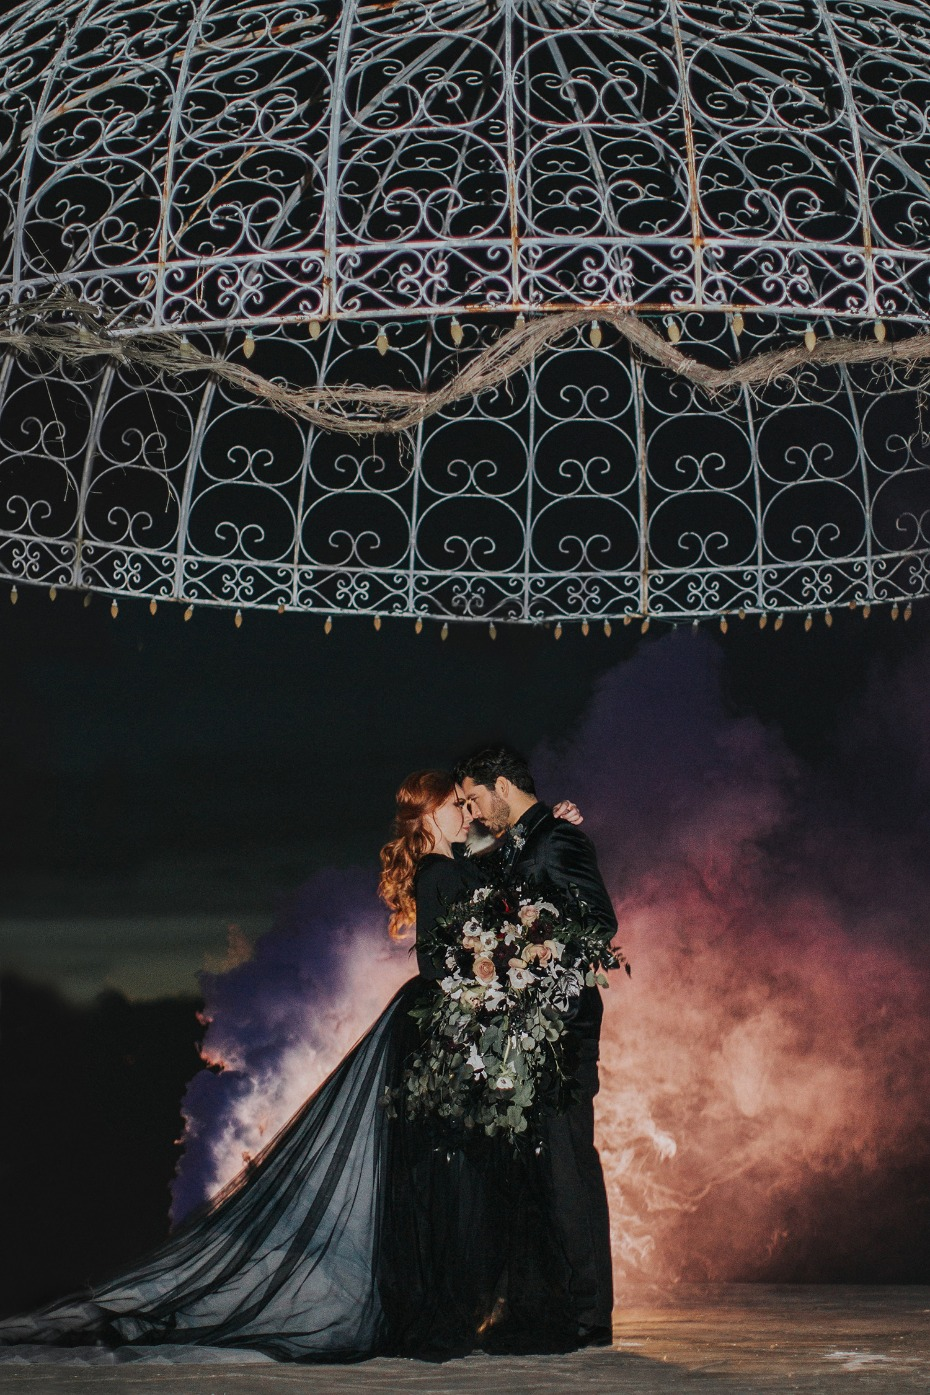 dramatic wedding portrait with smoke bomb